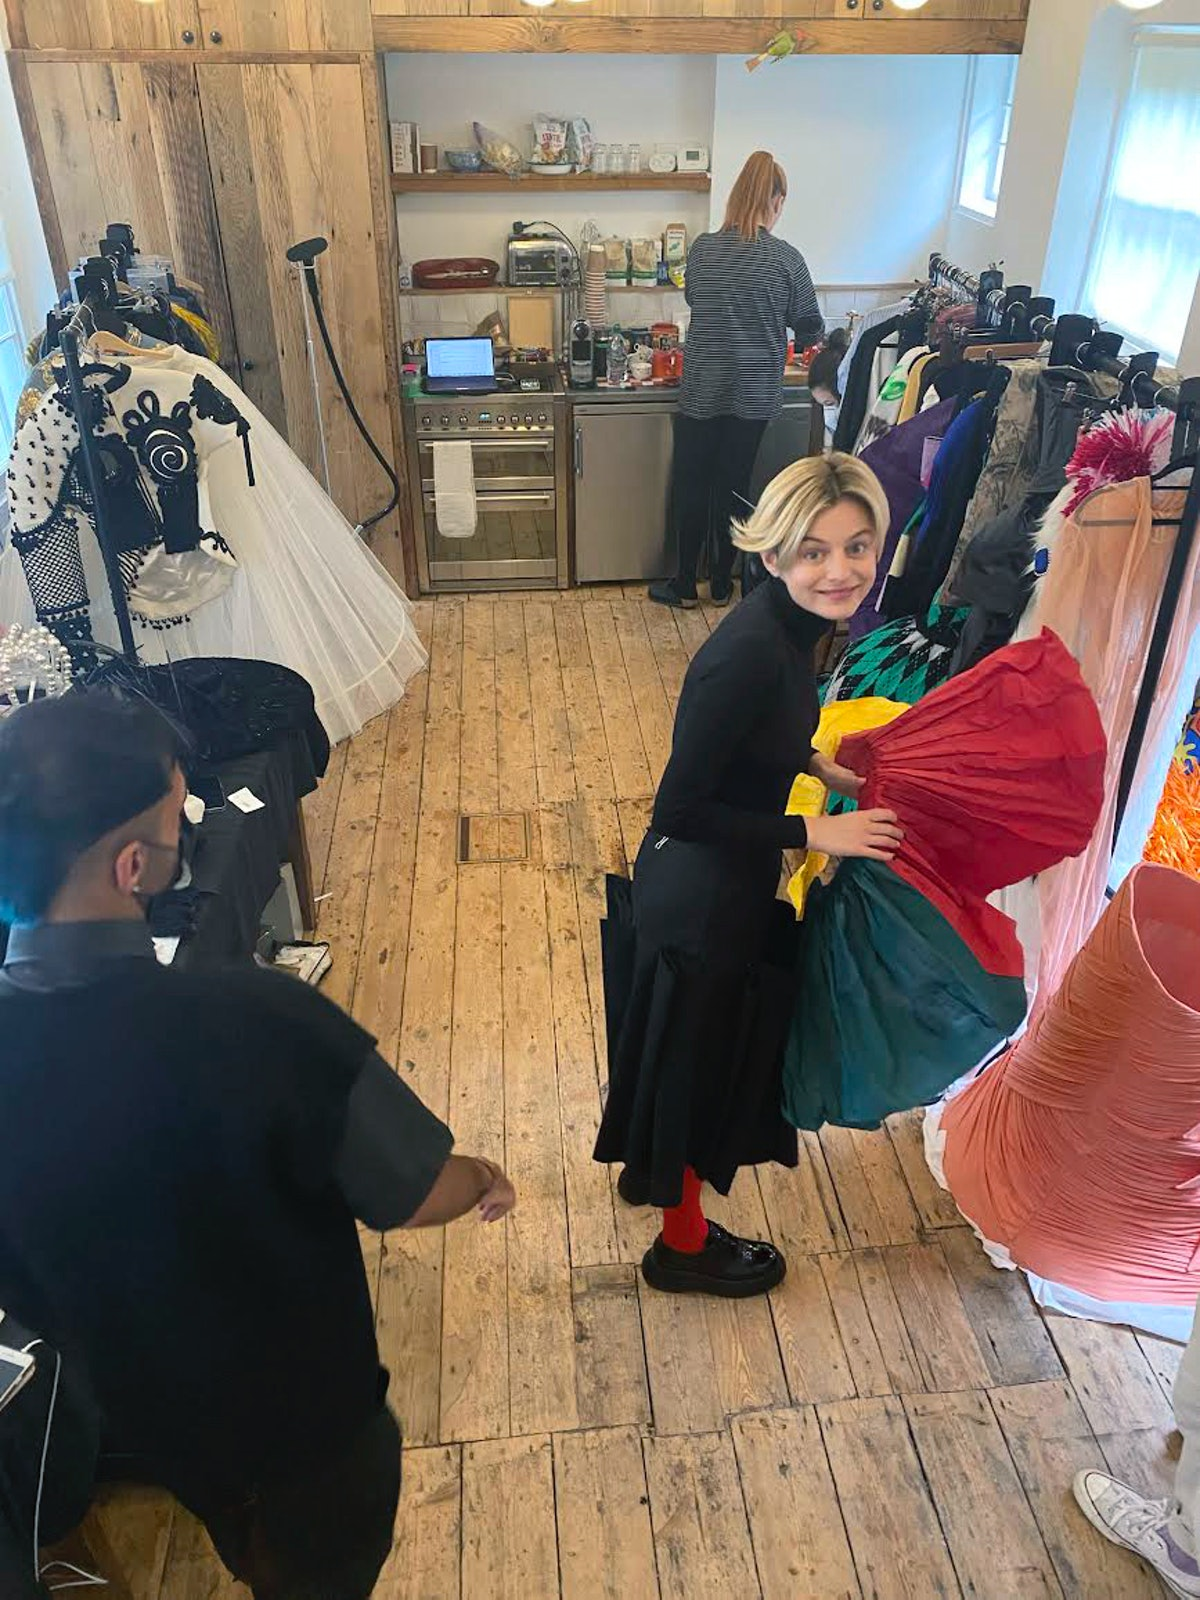 Emma Corrin pulling a skirt from a rack at photographer Tim Walker's studio.